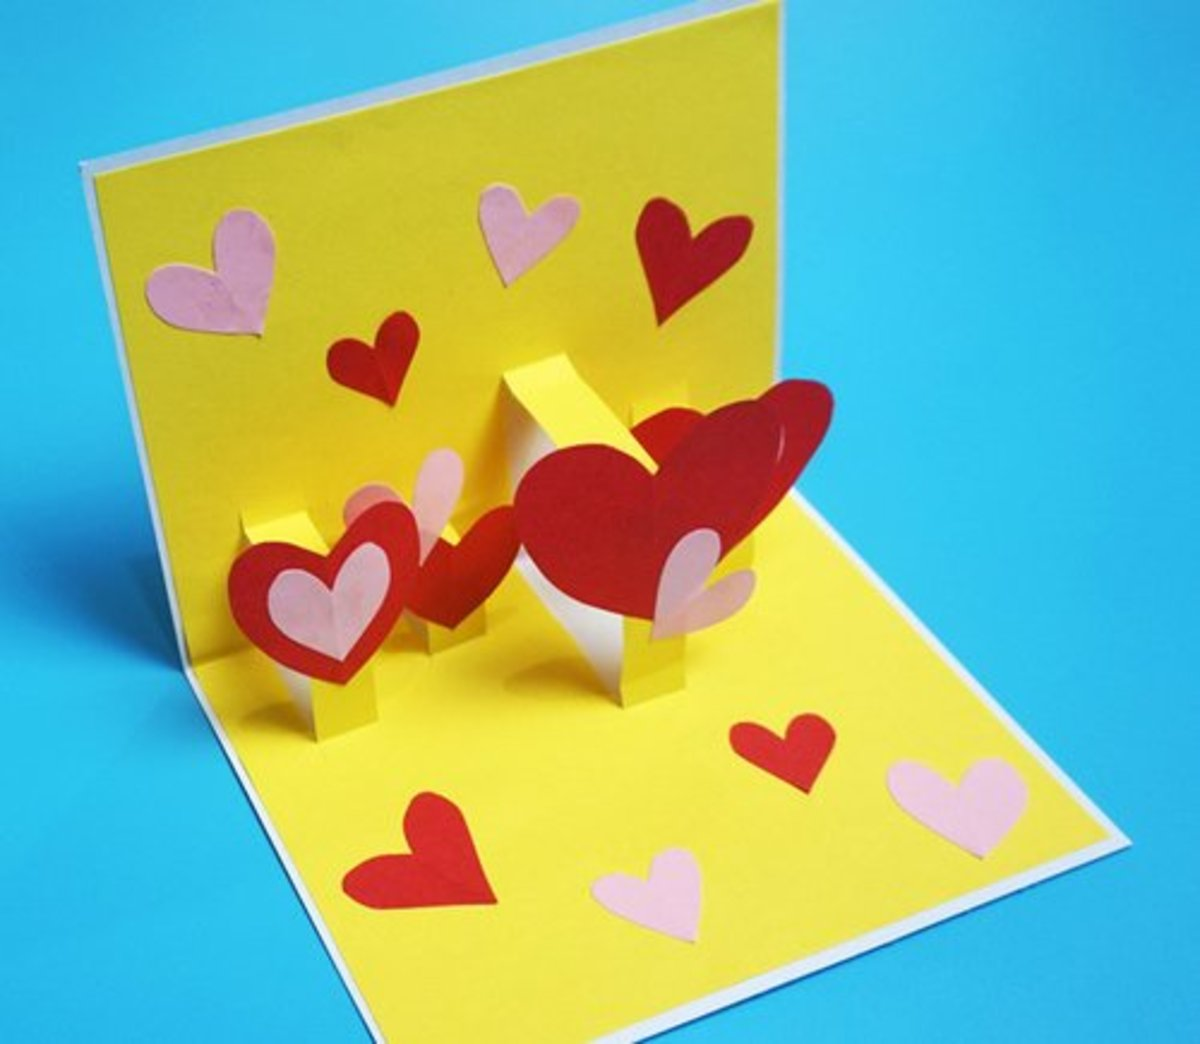 Outstanding 37 Diy Ideas For Making Pop Up Cards Feltmagnet Personalised Birthday Cards Paralily Jamesorg